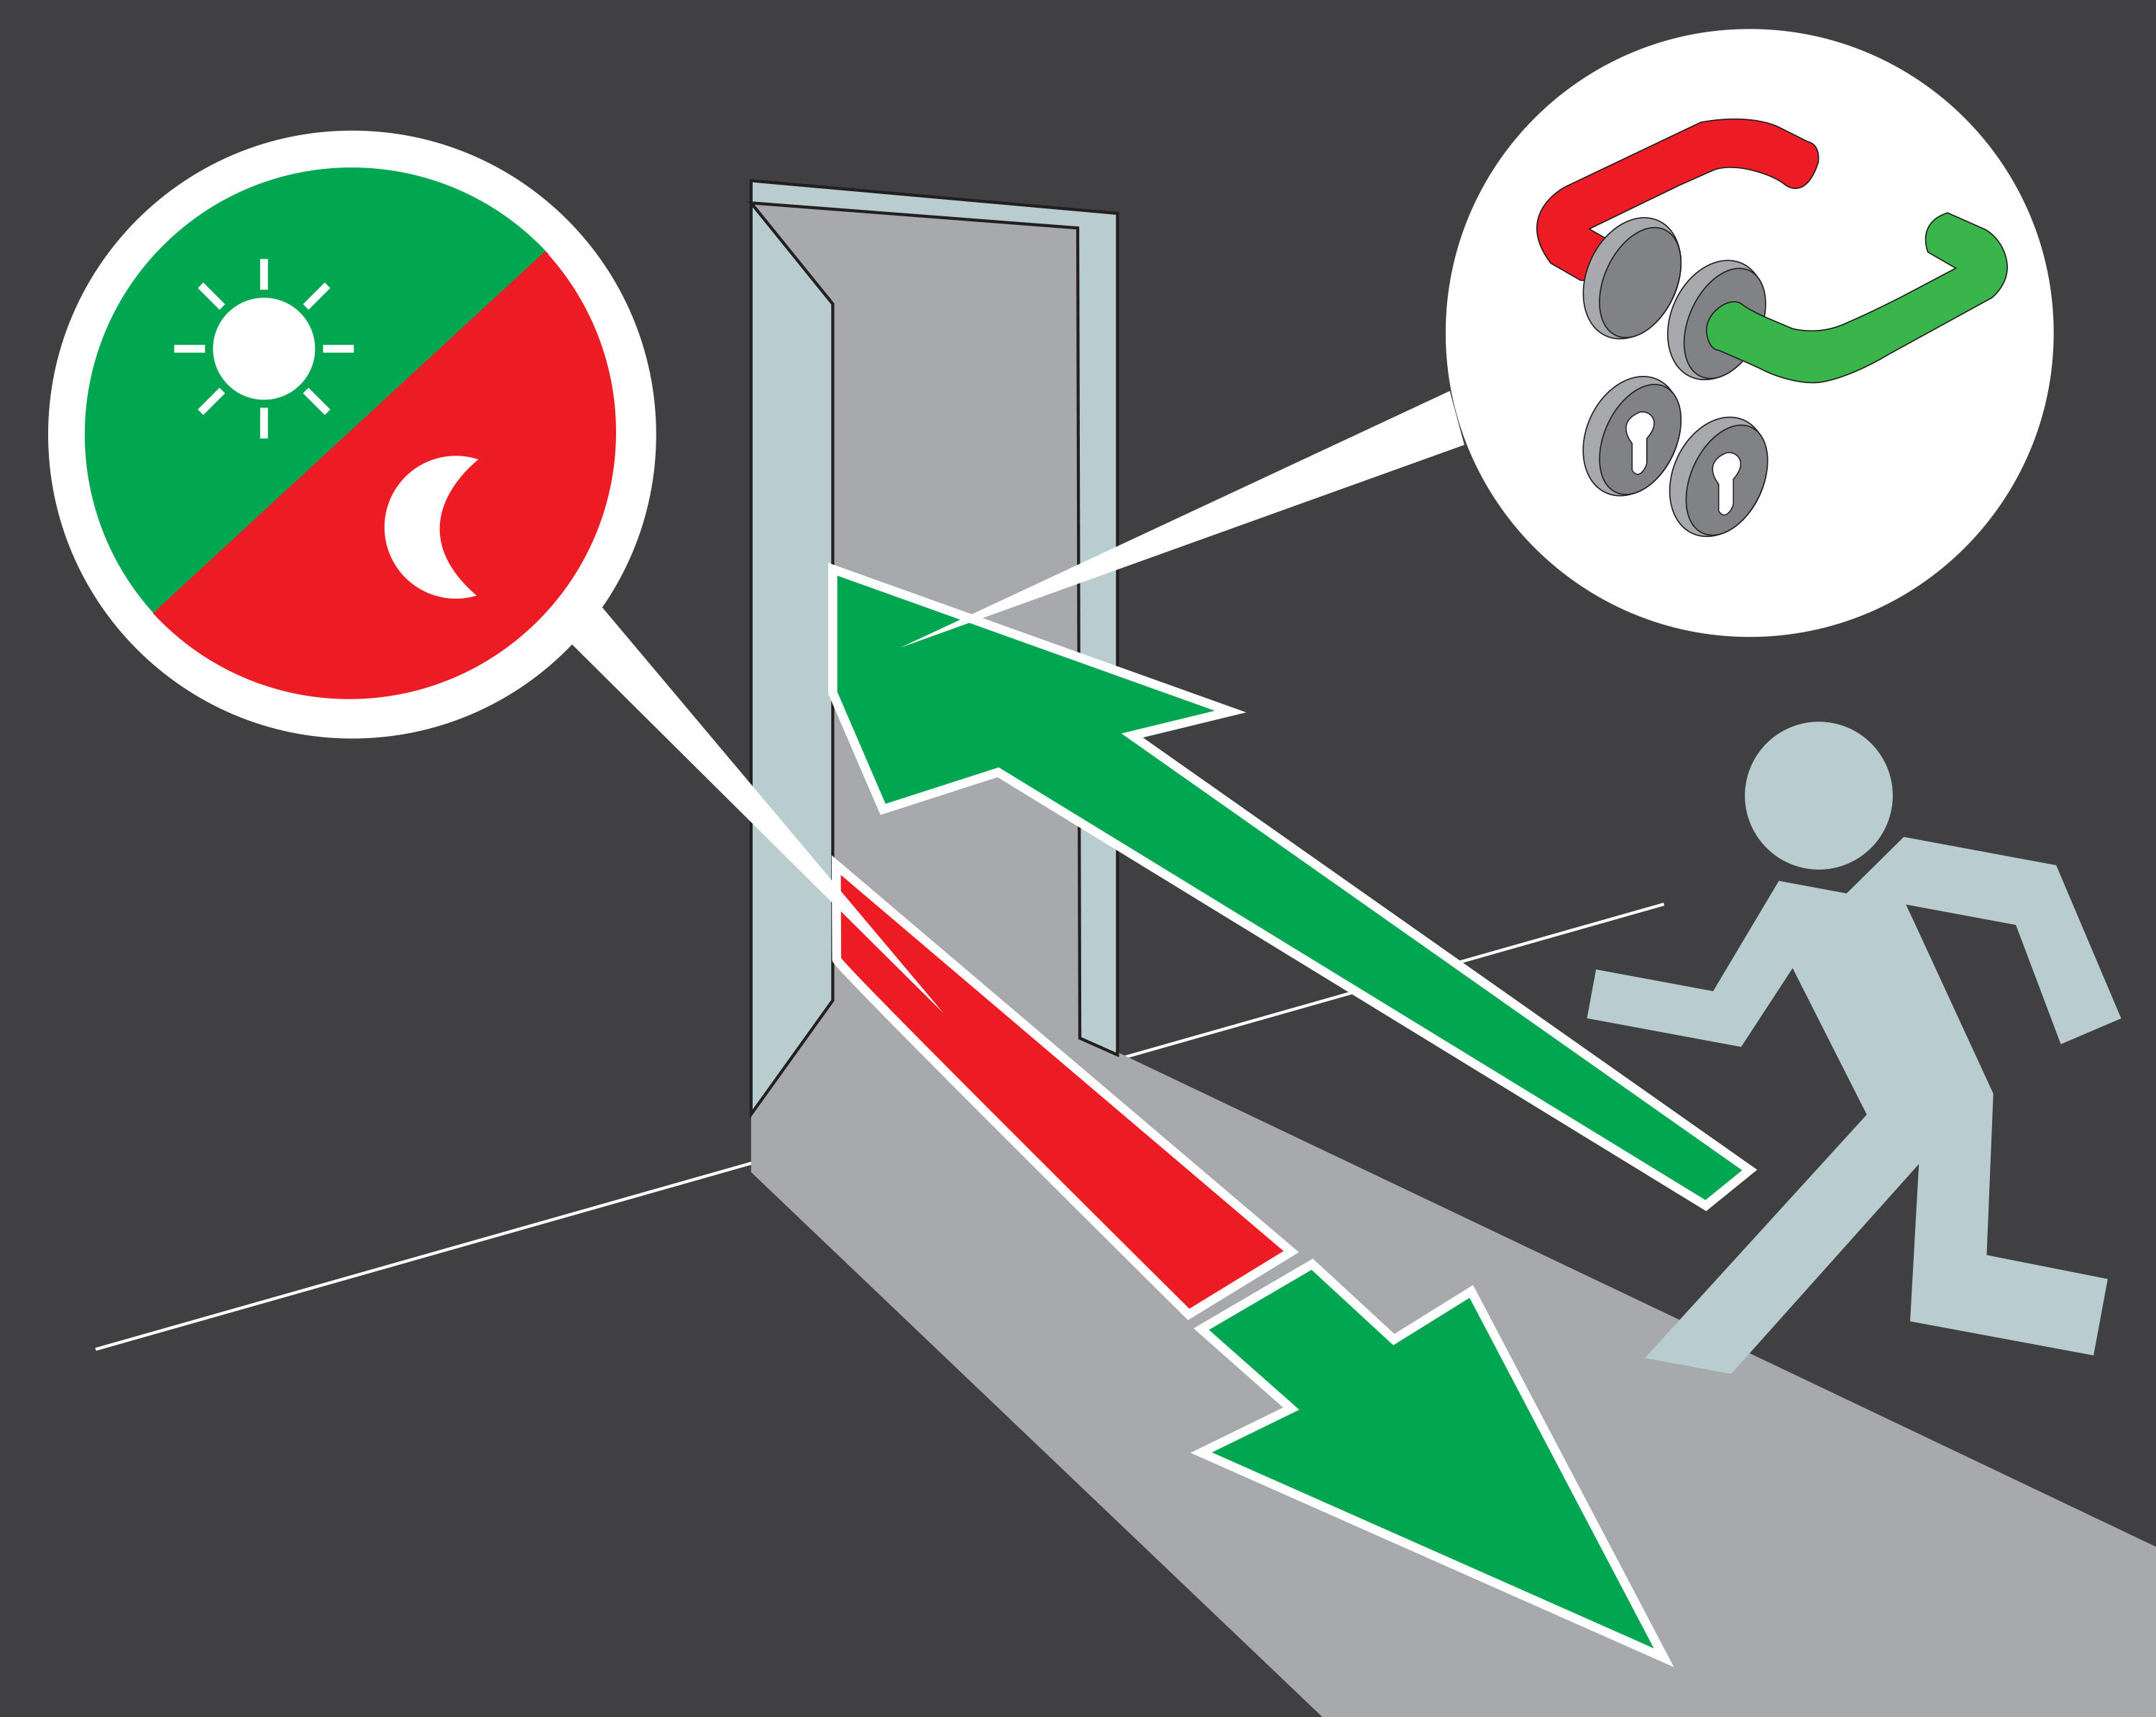 Door exit illustration switchover function